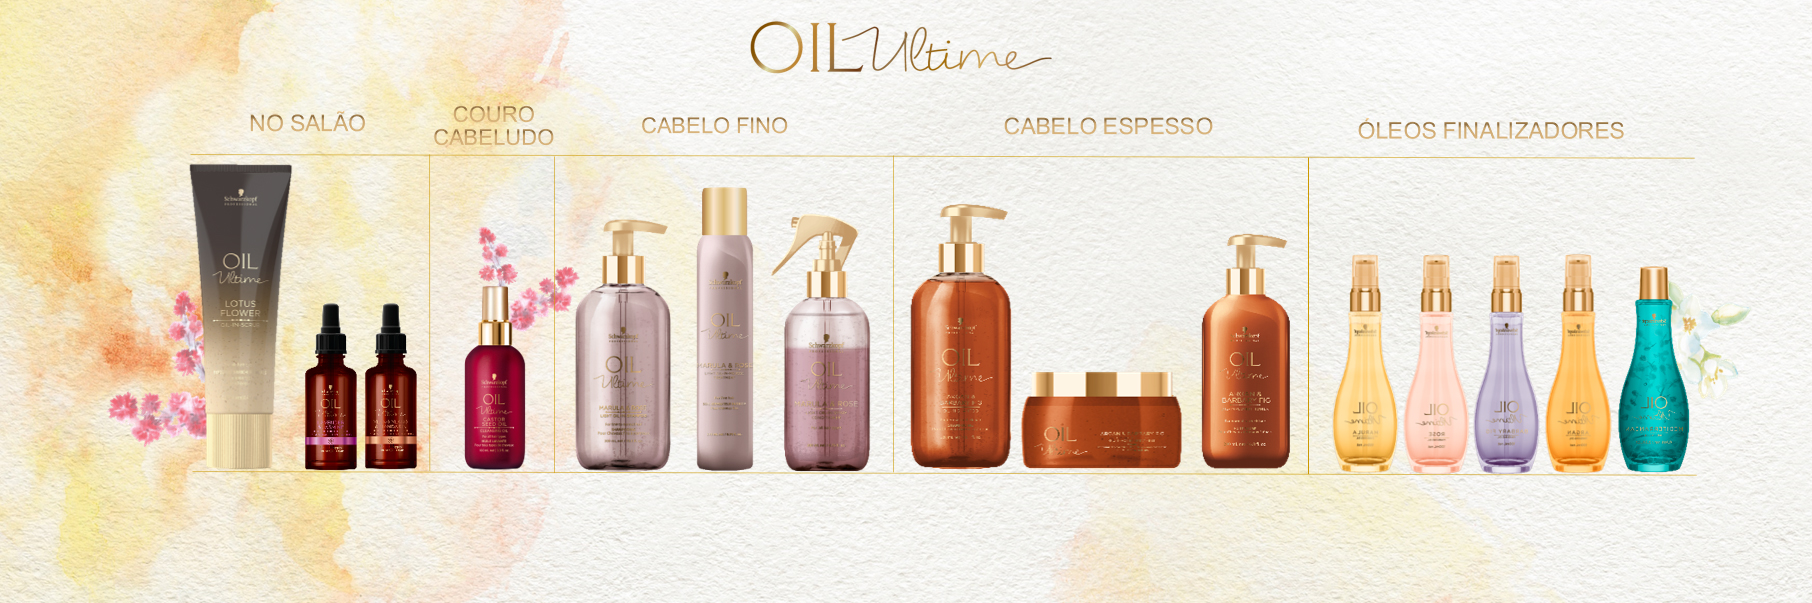 Gama Oil Ultime Essential Oil